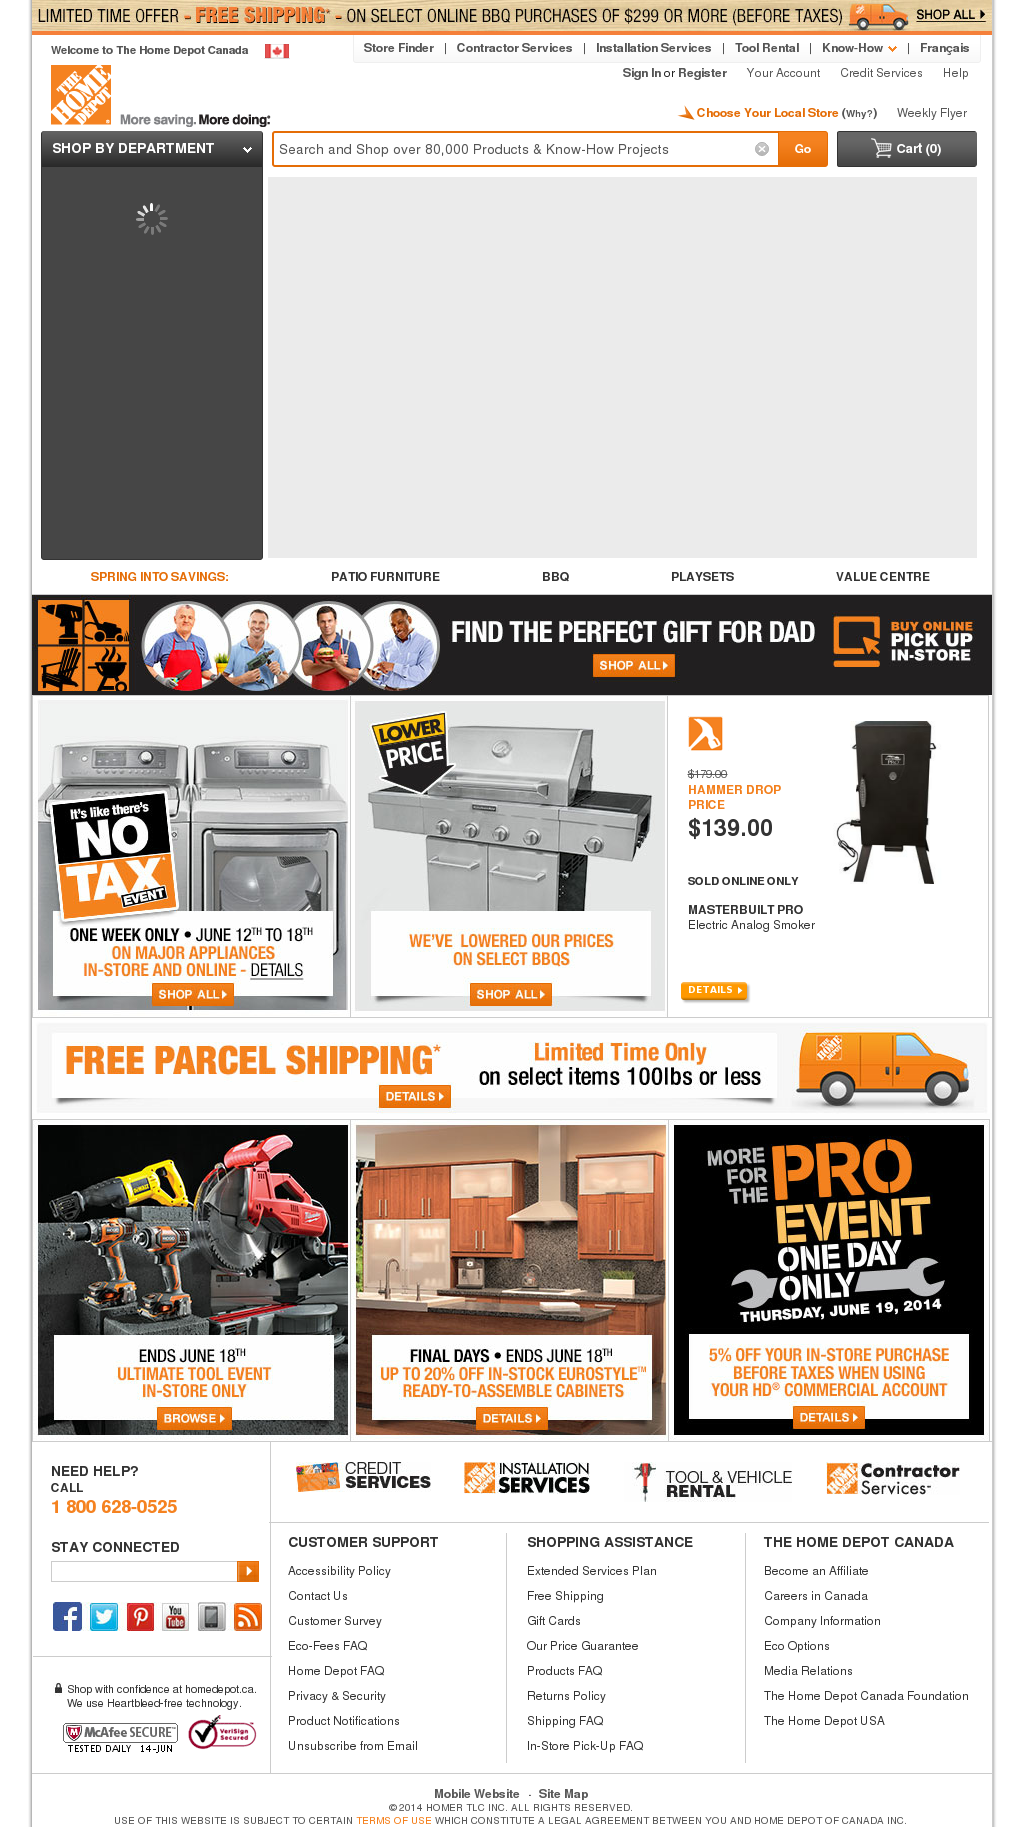 Home Depot Of Canada Competitors, Revenue and Employees